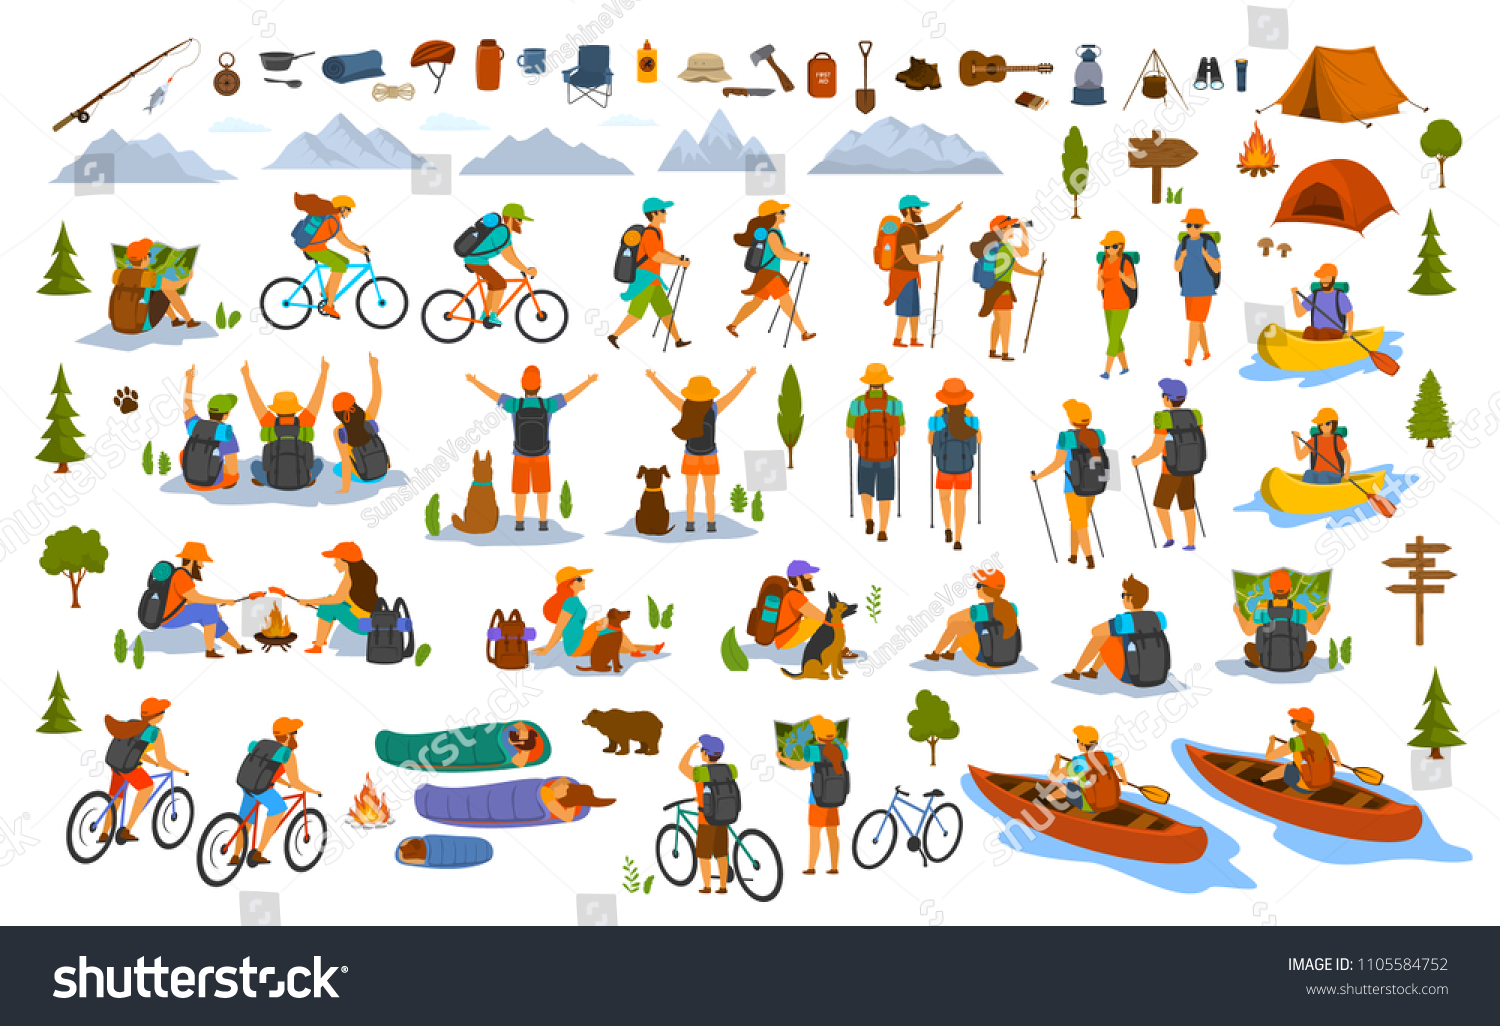 collection of hiking trekking people. young man woman couple hikers travel outdoors with mountain bikes kayaks camping, search location on map, sightseeing discover nature. isolated graphics set